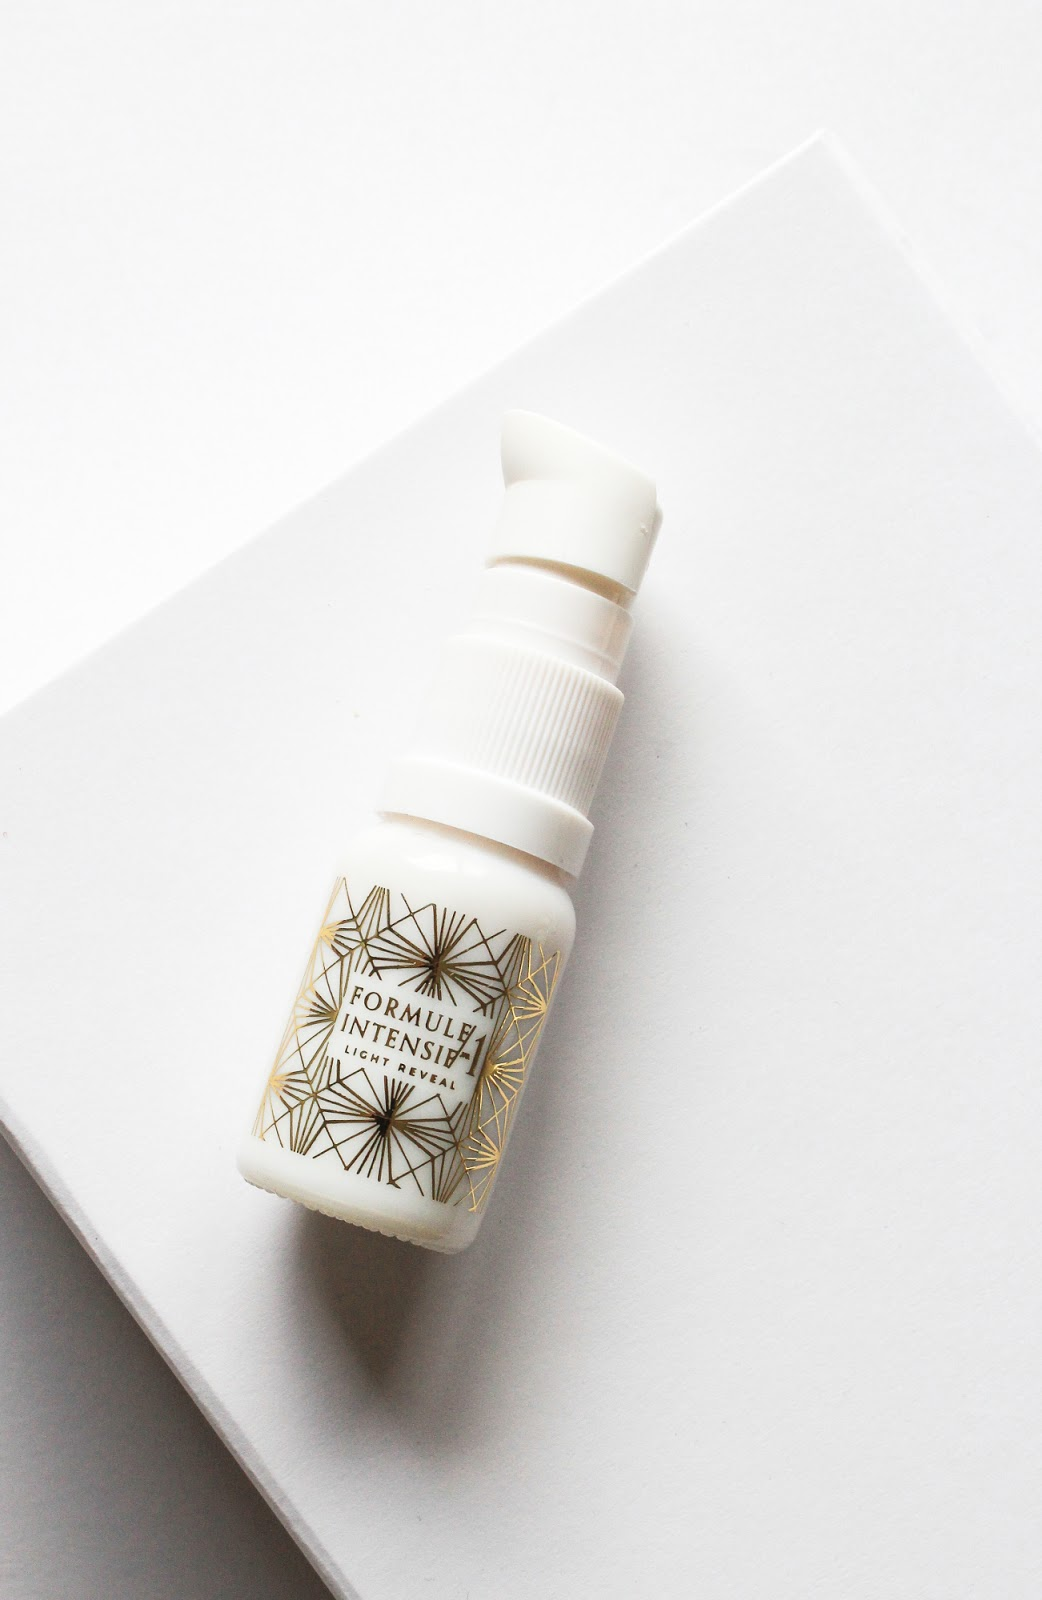 Wabi-Sabi Botanicals Indie Beauty Spotlight Discovery Limited Edition Beauty Heroes Light Reveal Targeted Treatment Serum